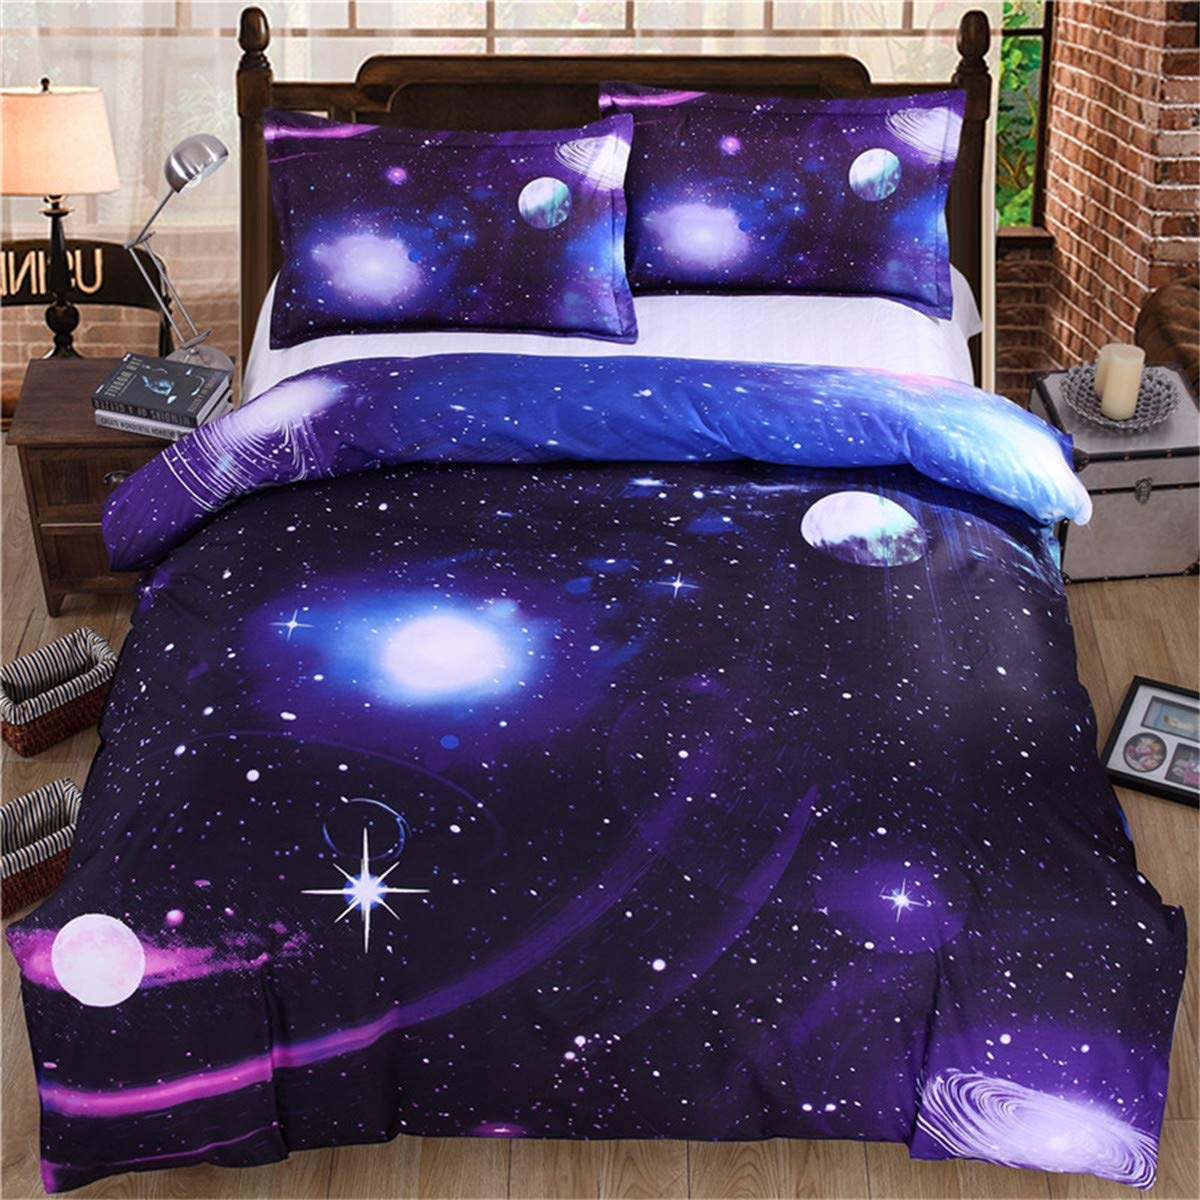 200cm 3D Galaxy Bedding Duvet Cover Set Single Reversible Purple Star Milky Way Microfiber Bedding Quilt Cover with Zipper Ties for Kids Teens Girls 135